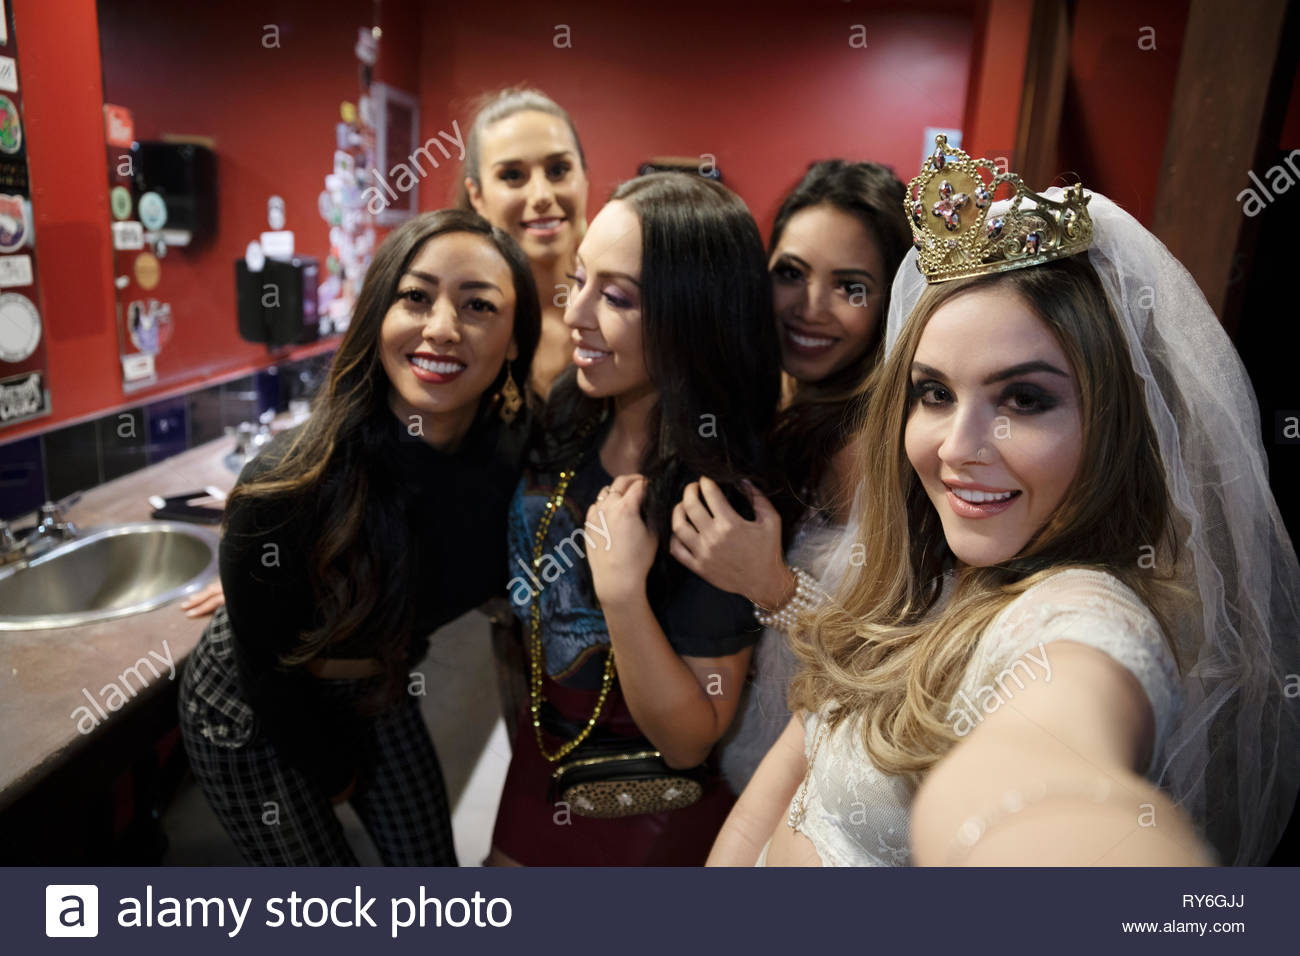 Selfie point of view bachelorette and friends in nightclub bathroom - Stock Image